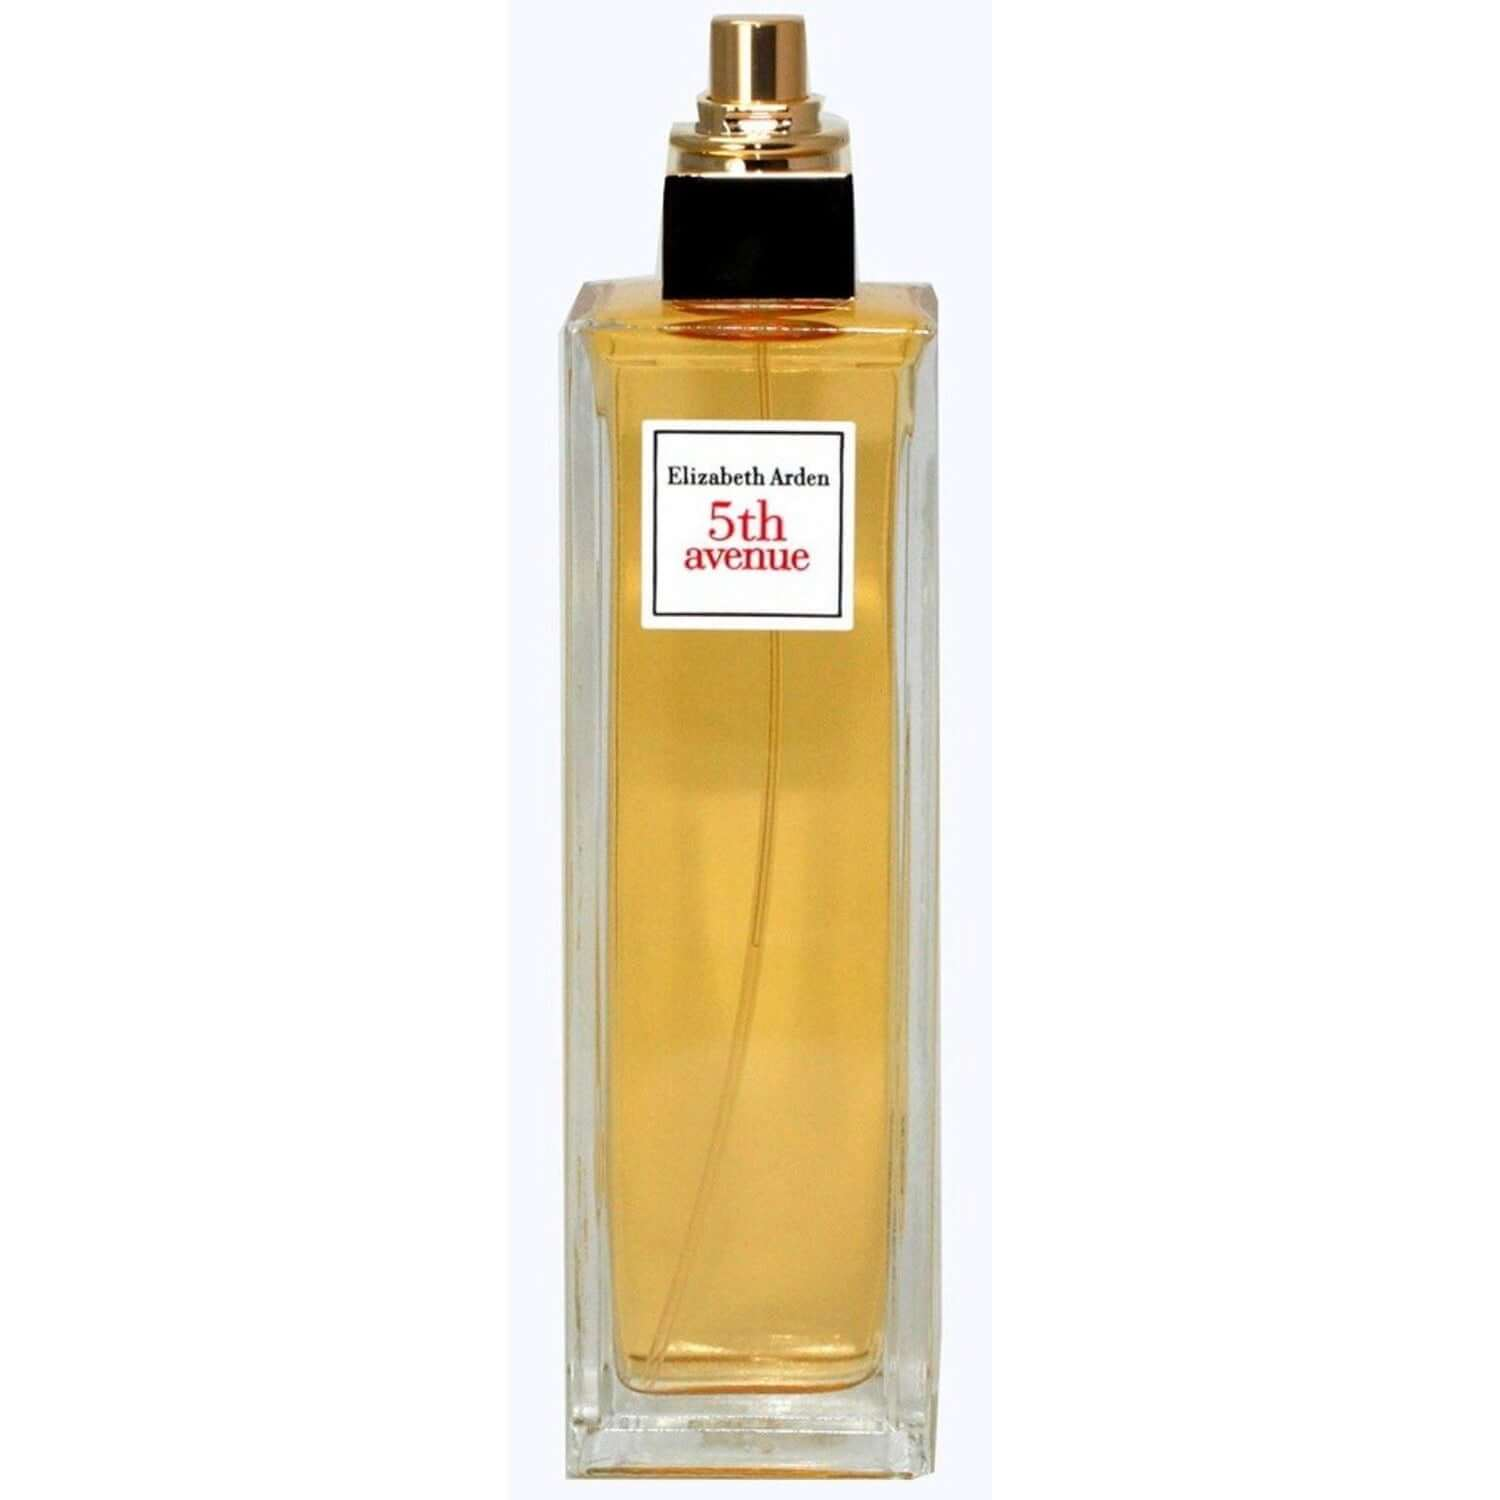 5th-avenue-by-elizabeth-arden-for-women-edp-4-2-oz-new-box-tester